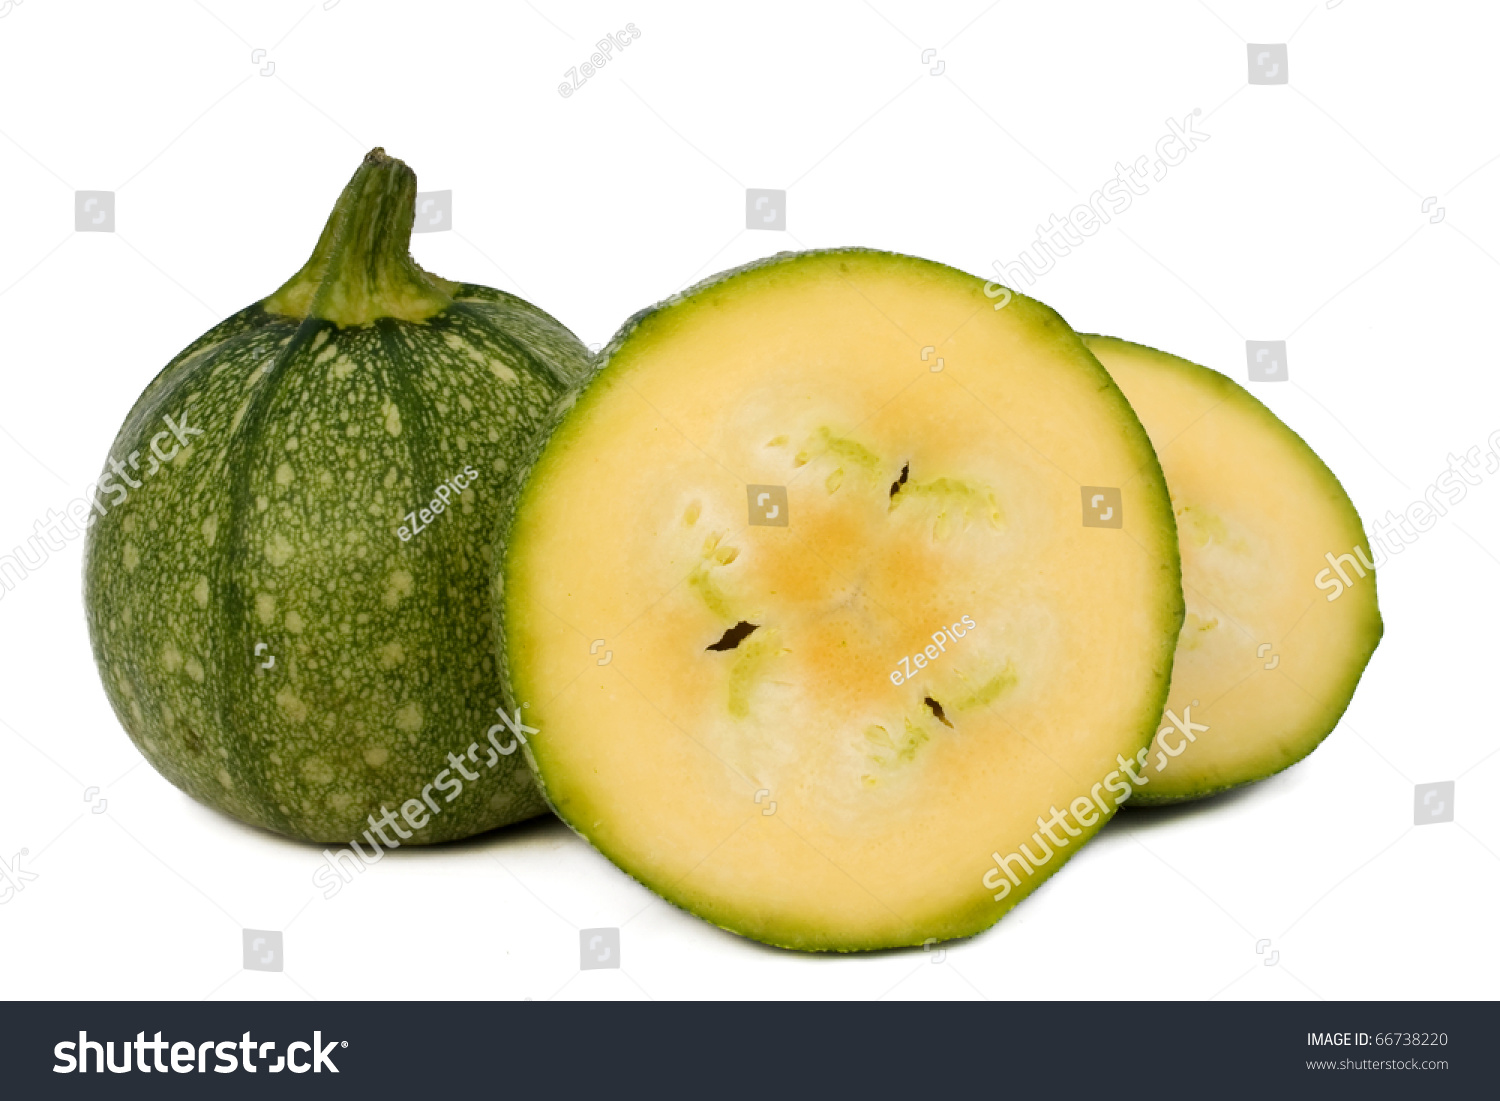 Food Vegetables Round Zucchini Entire Sectioned Stock ...